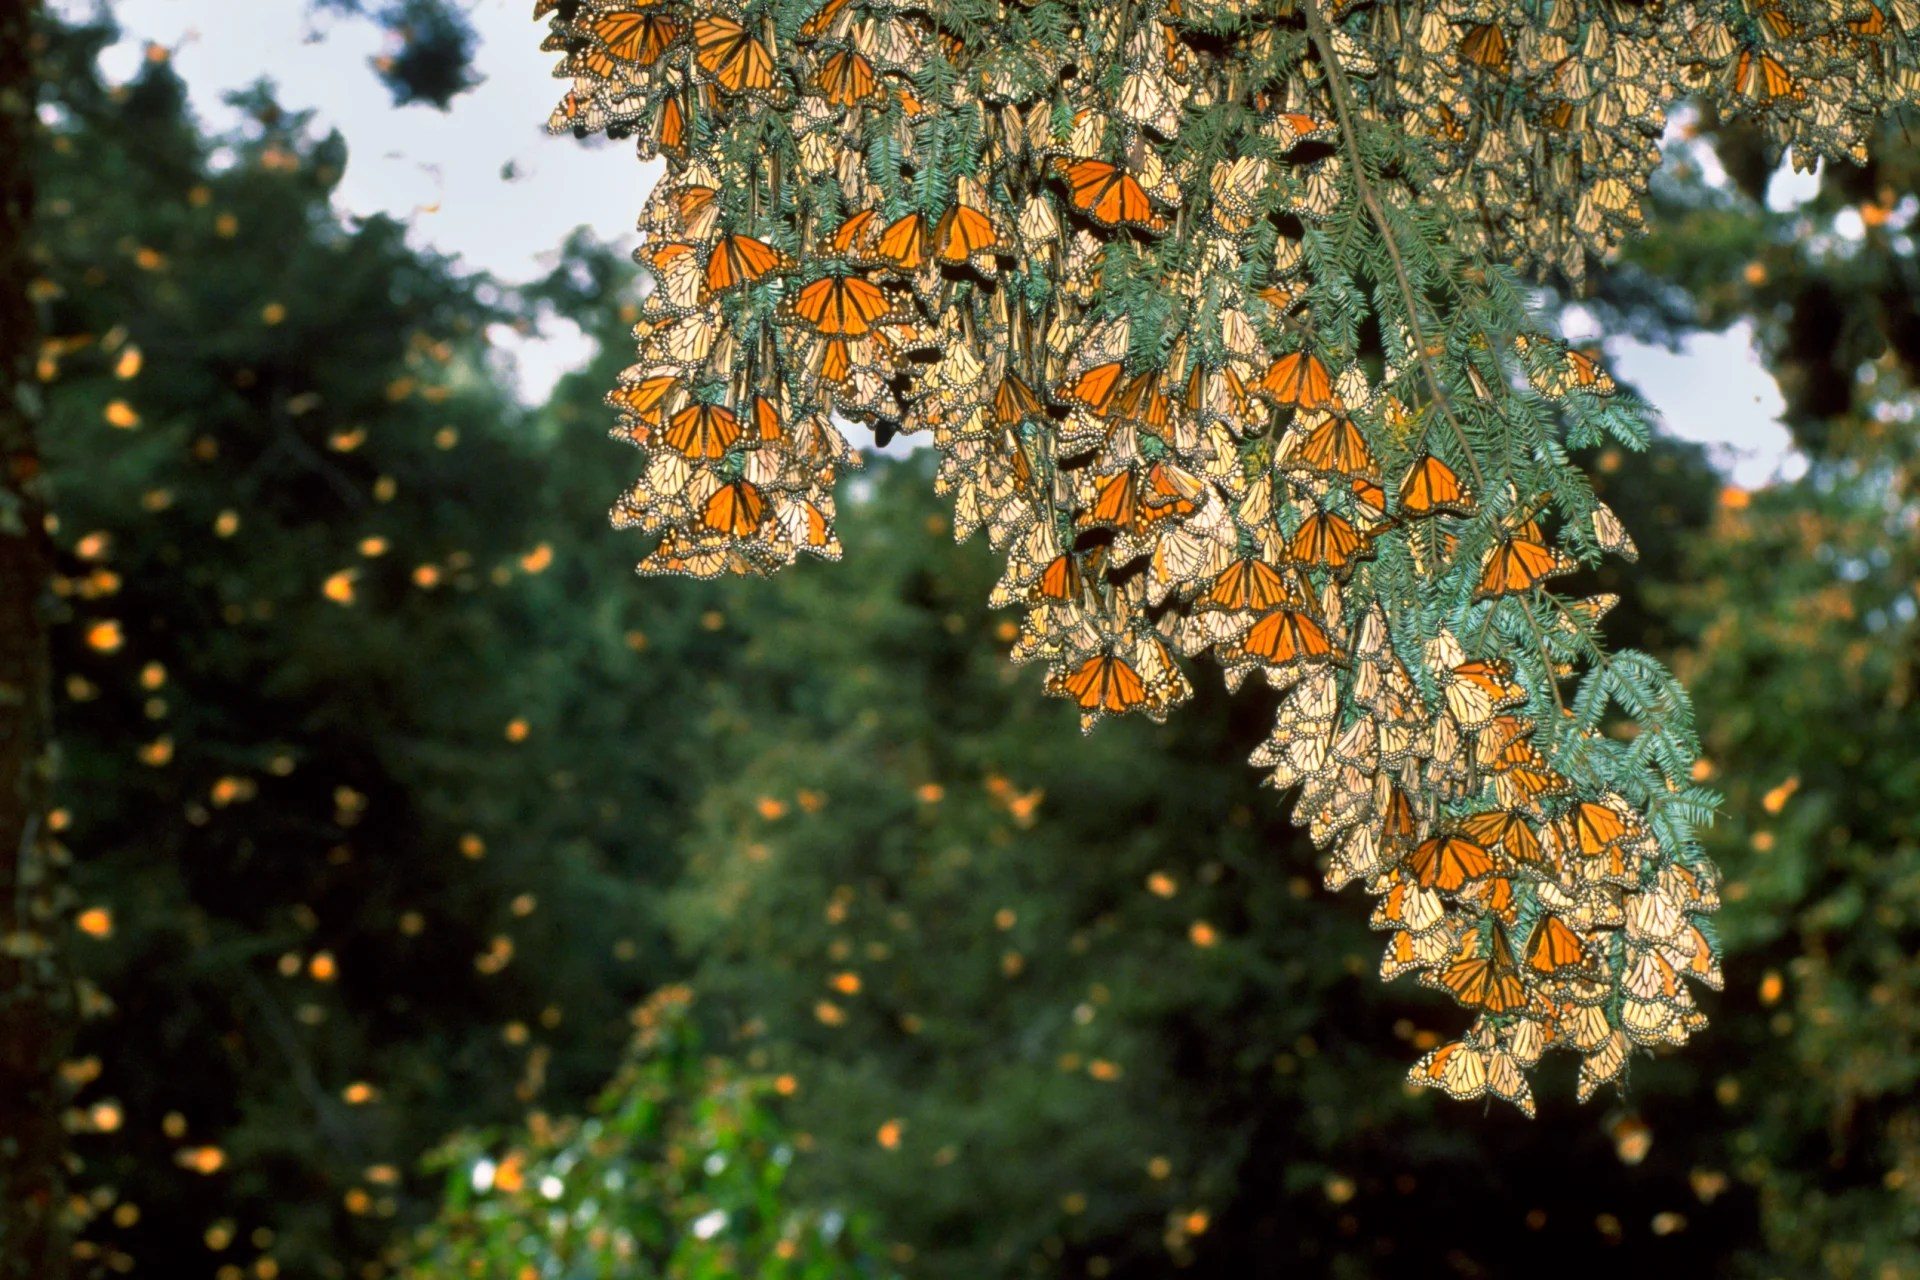 Monarch Butterfly Migration Facts